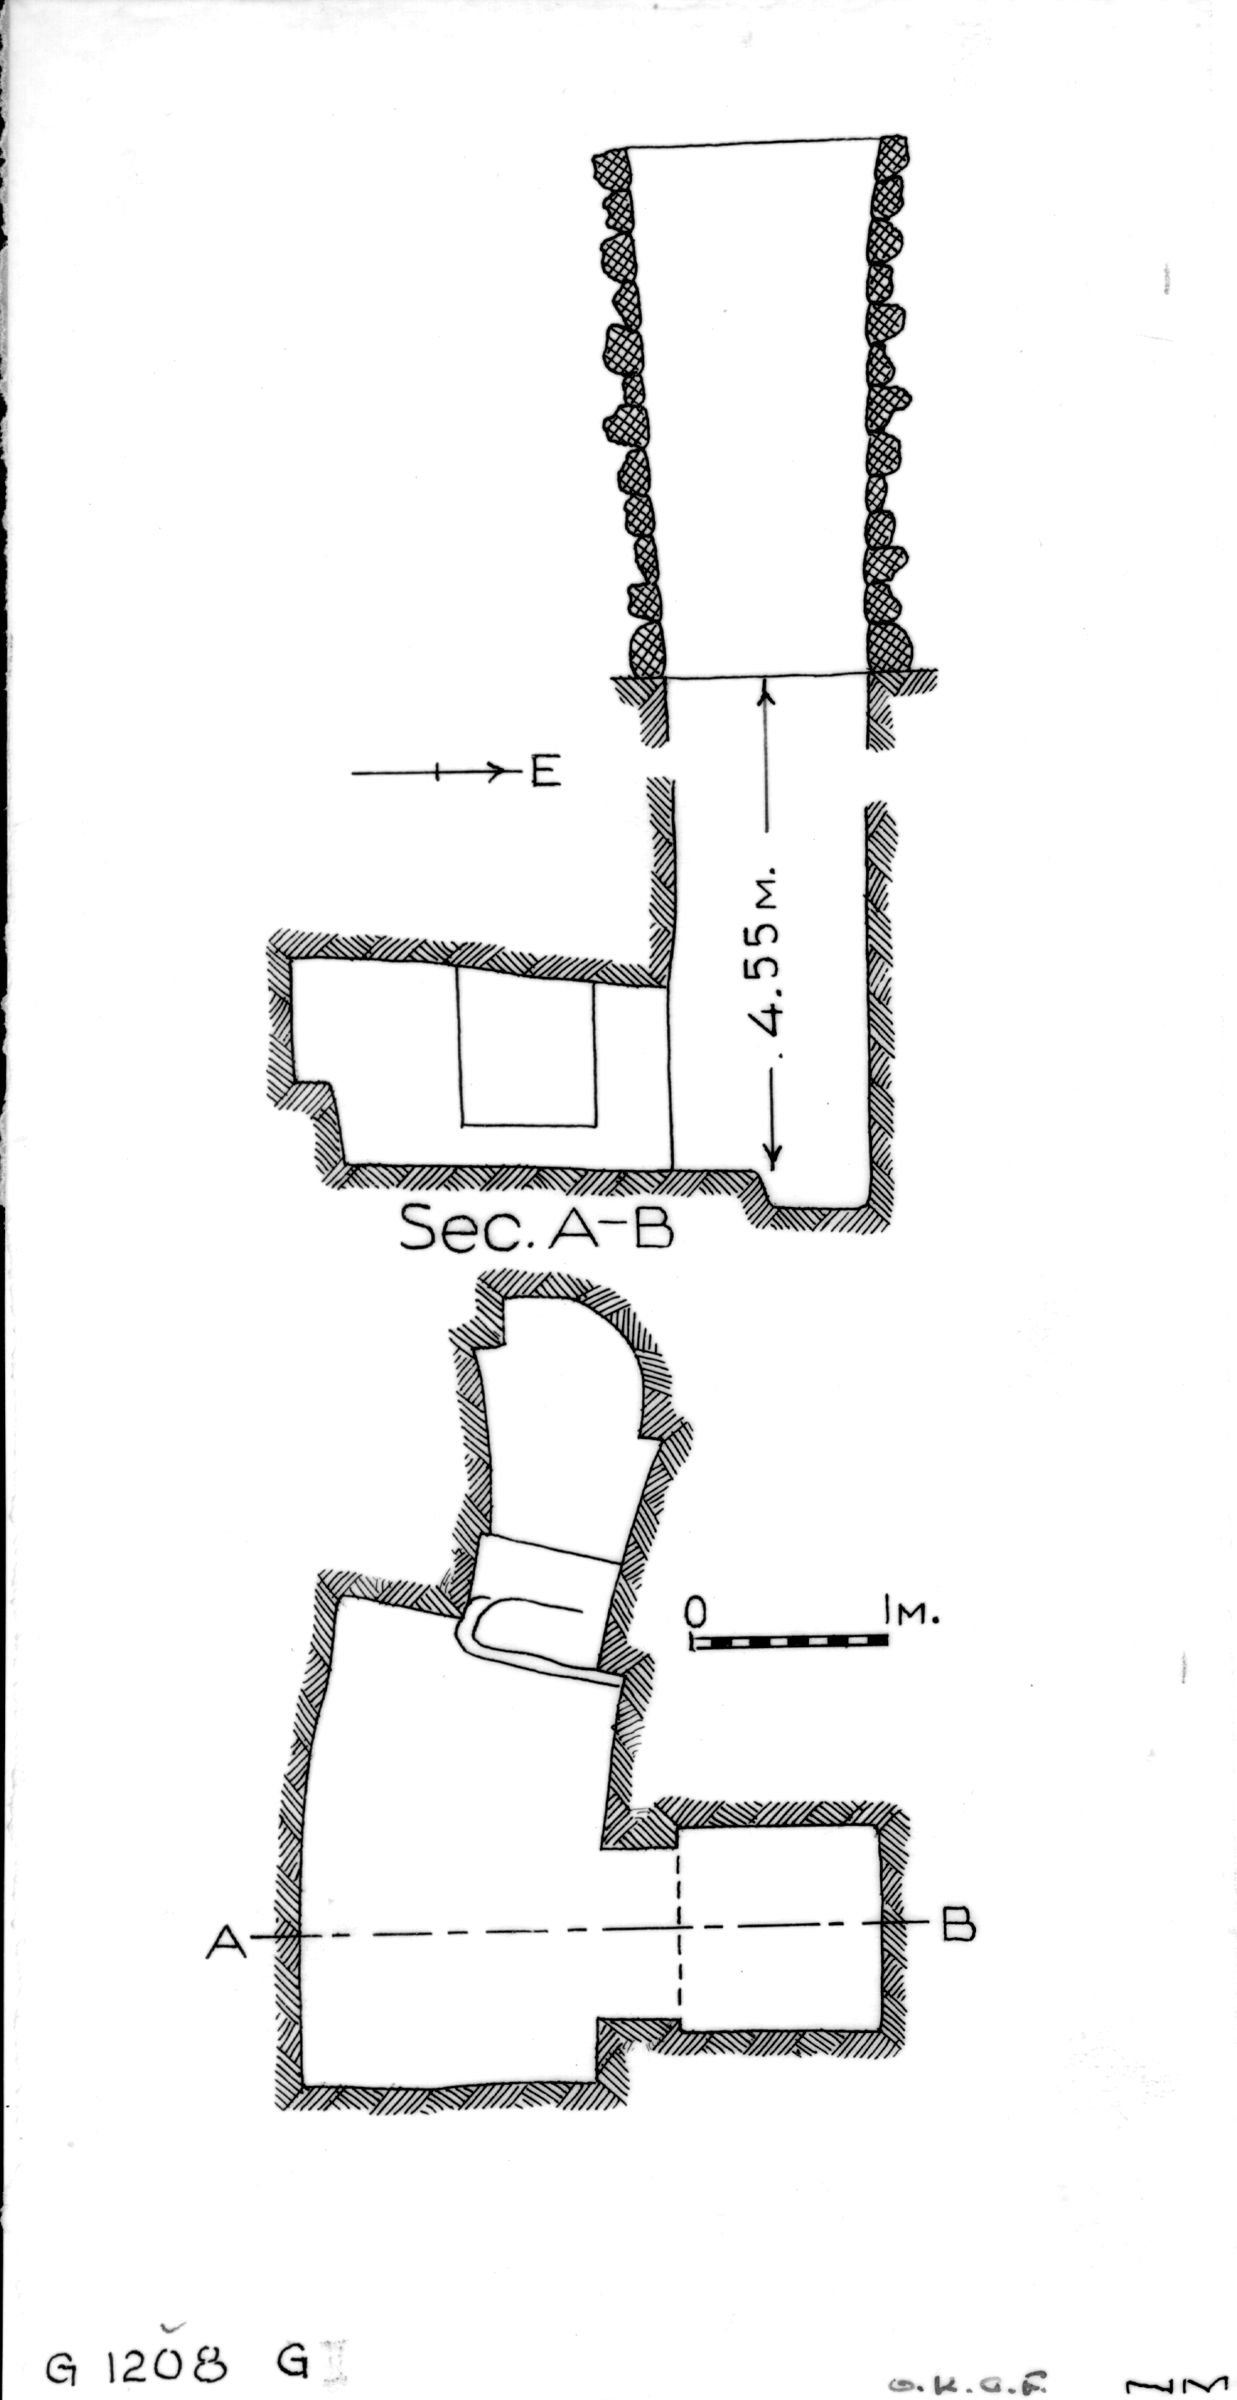 Maps and plans: G 1208, Shaft G